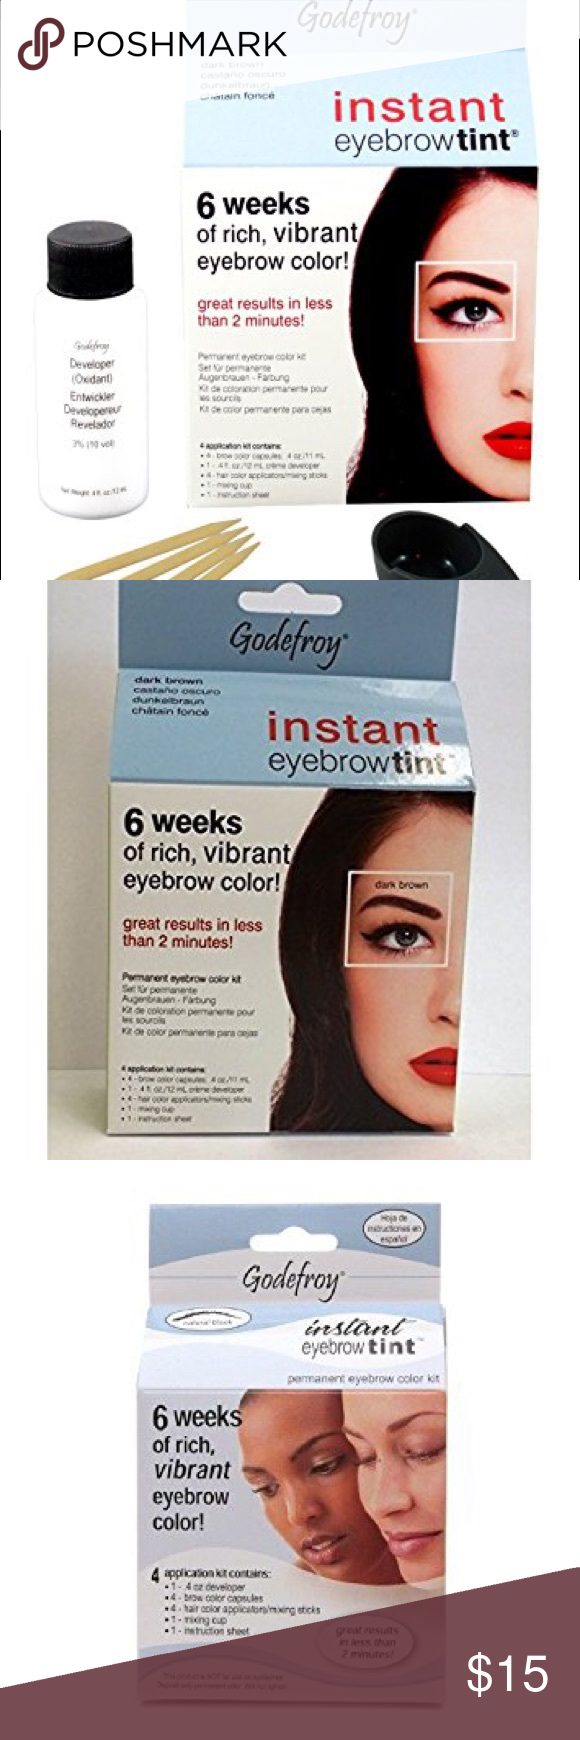 Jet Black Instant Eyebrow Tint Brand New Description Godefroy